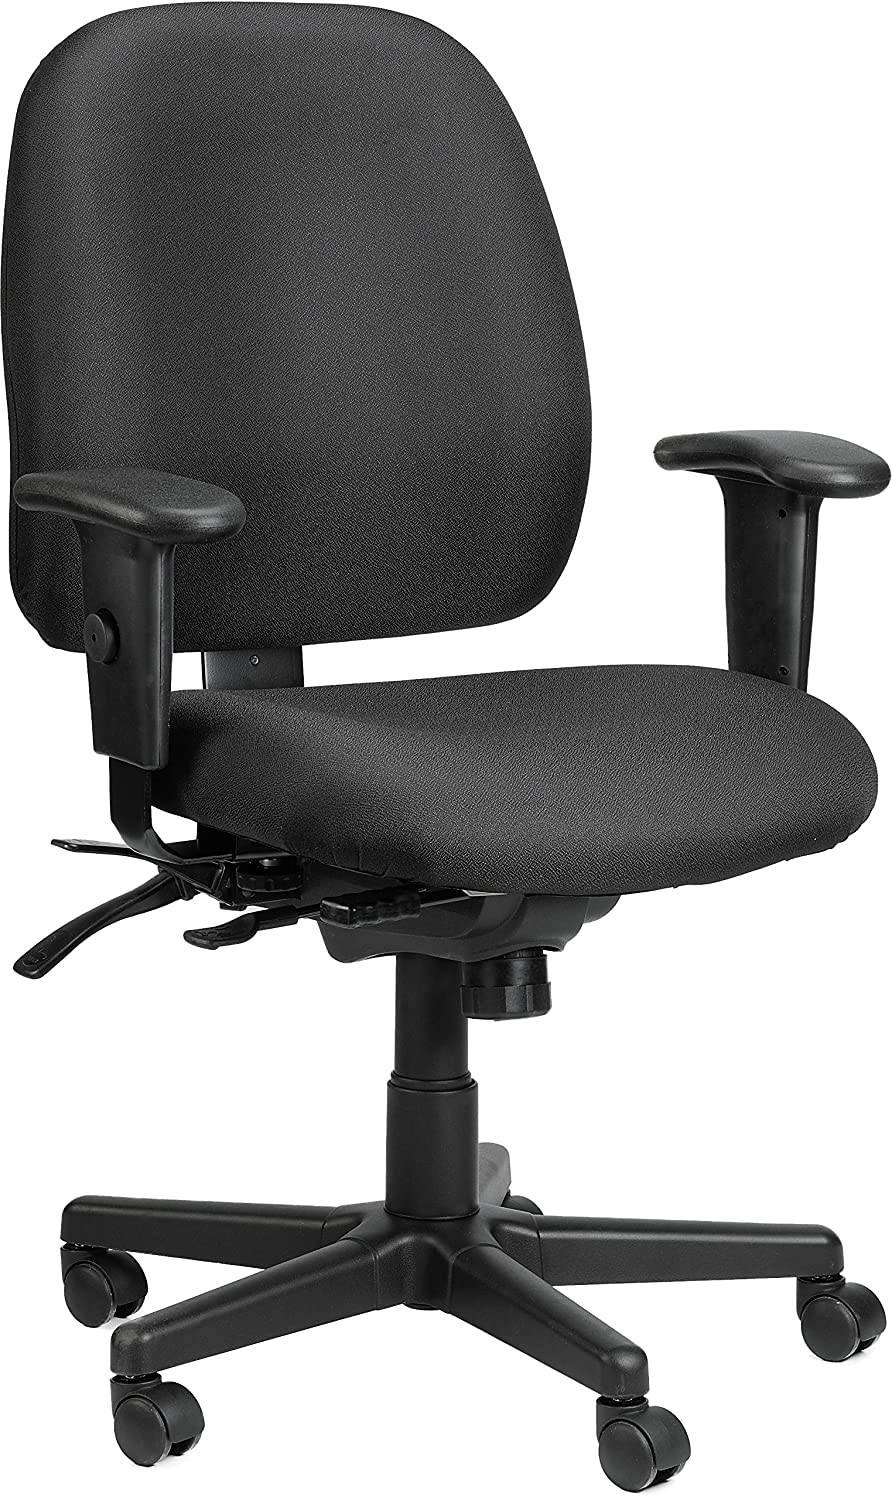 Eurotech Seating 4×4 Multi function Chair, Black